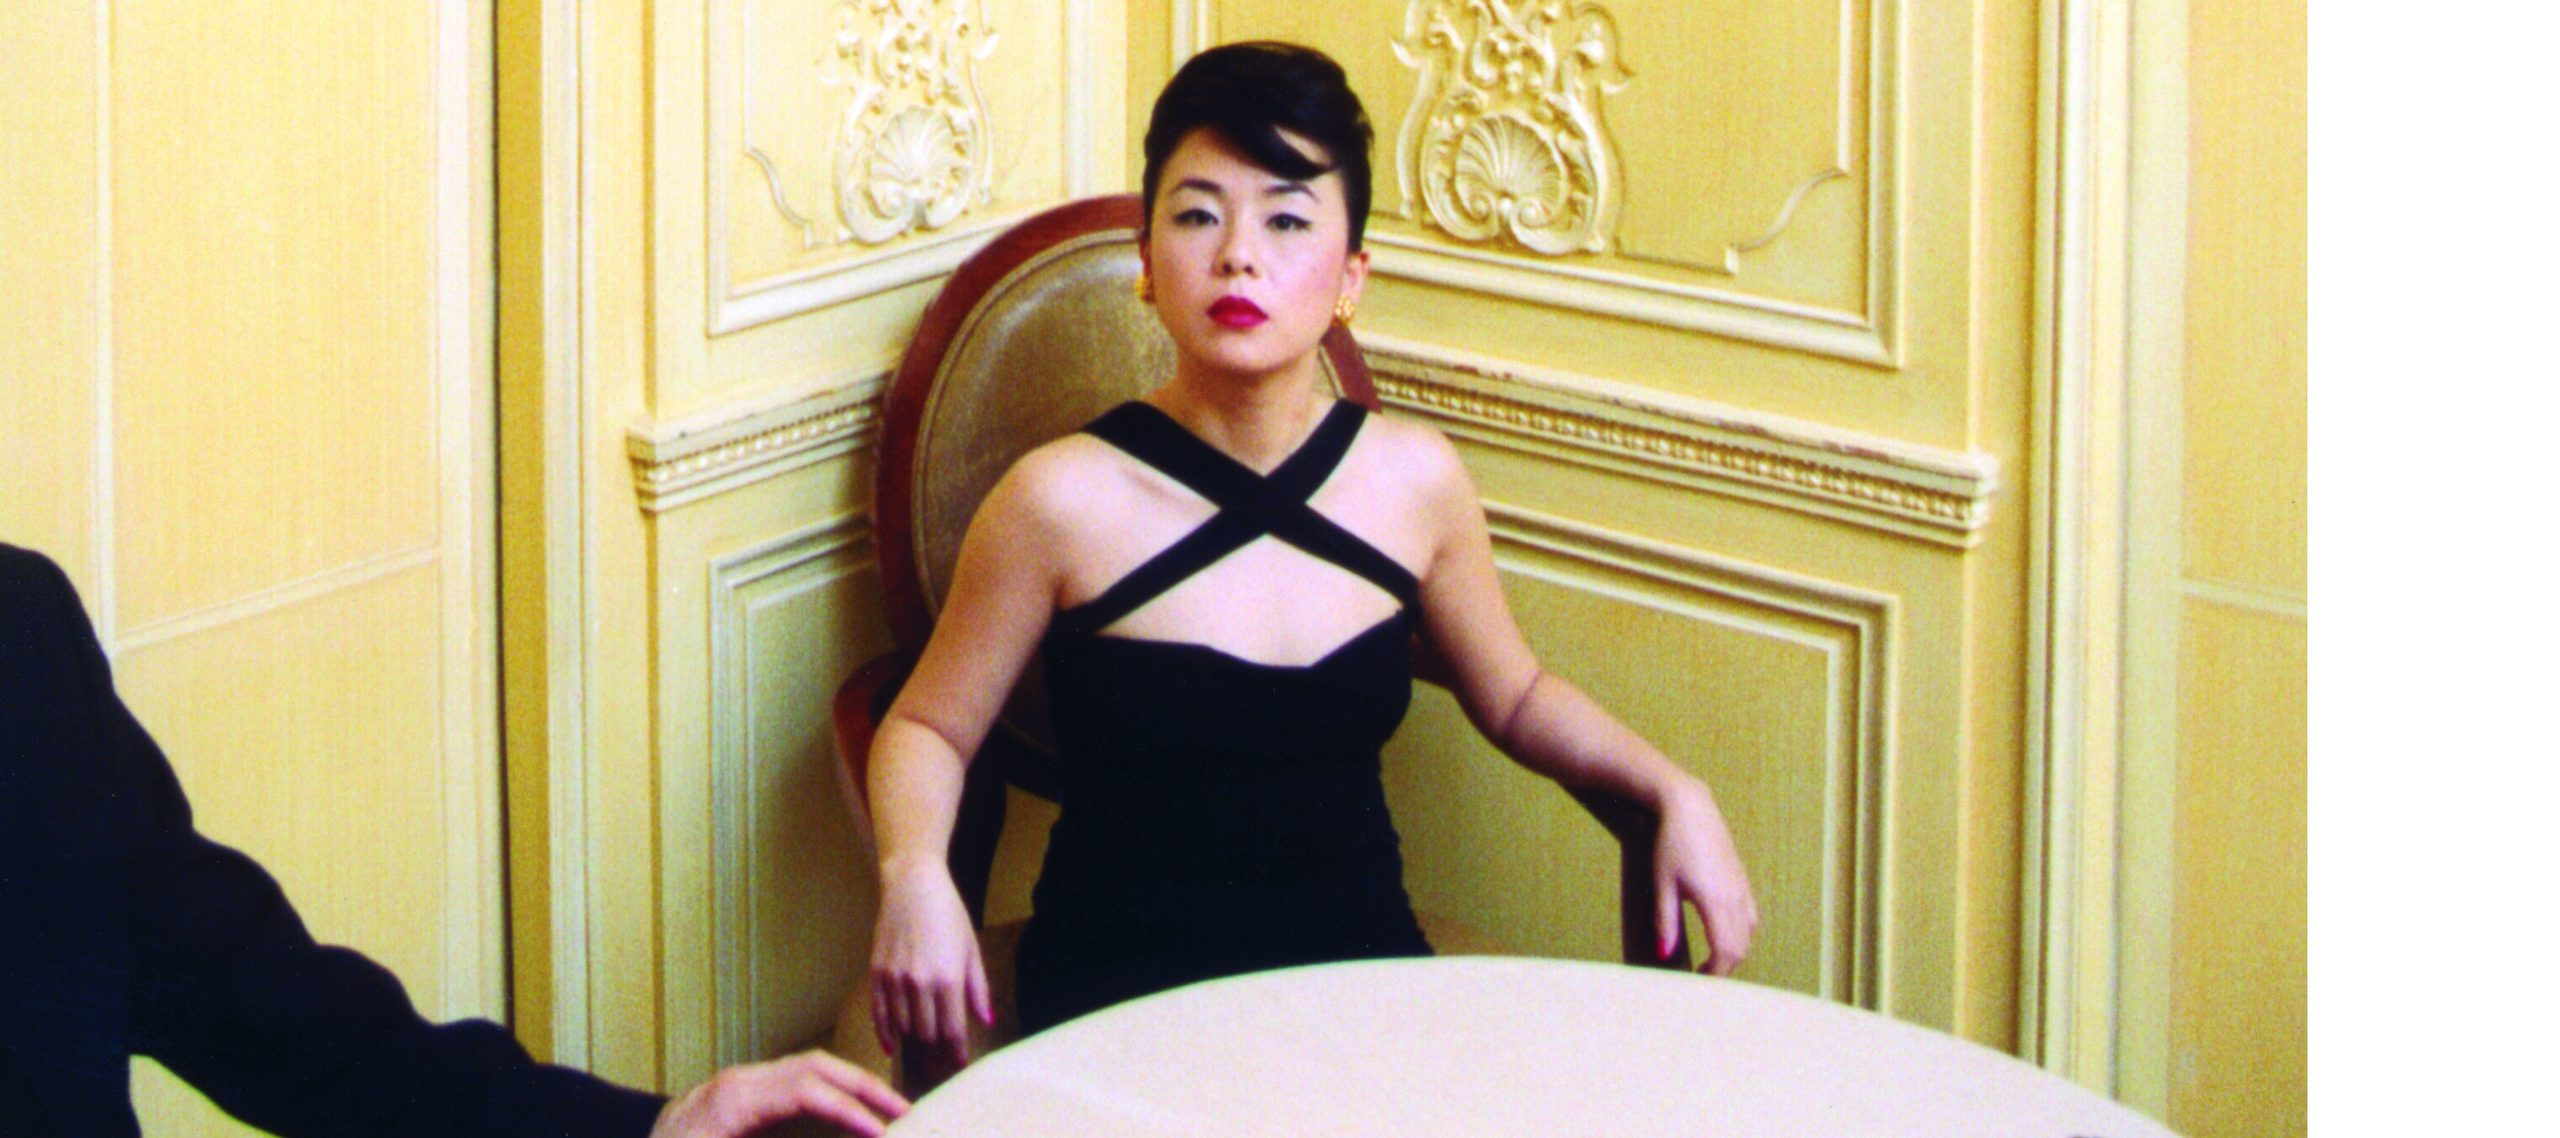 A light-skinned woman of Asian descent is dressed up in a fancy black dress, sitting at a table in a room with ornate yellow walls. Her hair is in an updo. She stares unsmiling at the camera, to her left is a male companion in a suit, thought he has been cut from the frame and all that shows his is arm and half is body.